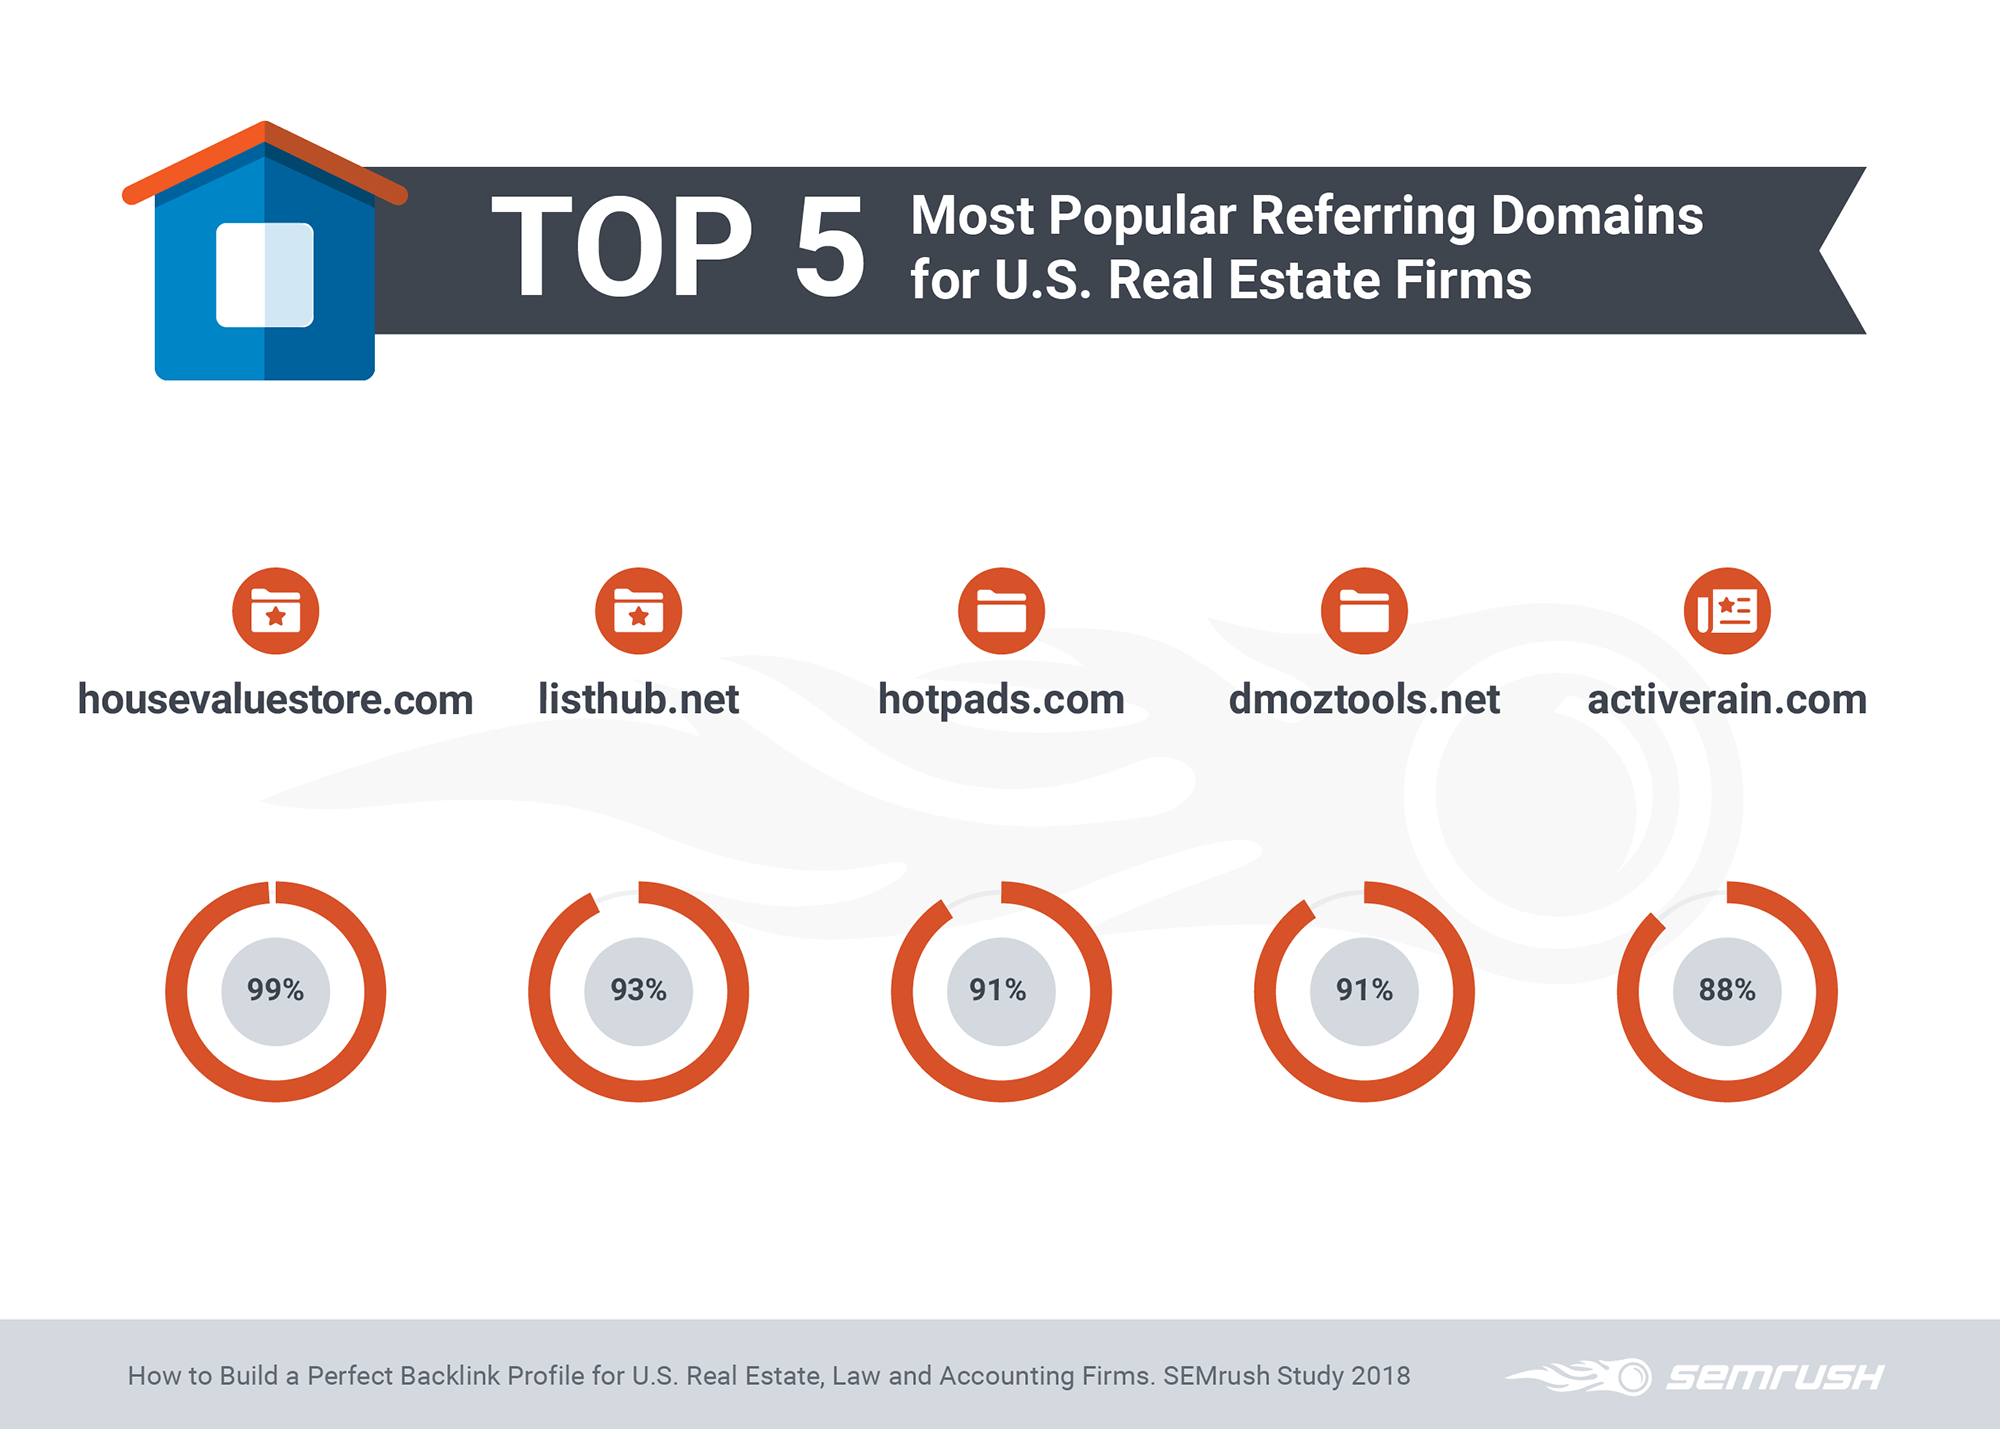 Top 5 Most Popular Referring Domains for Real Estate Firms